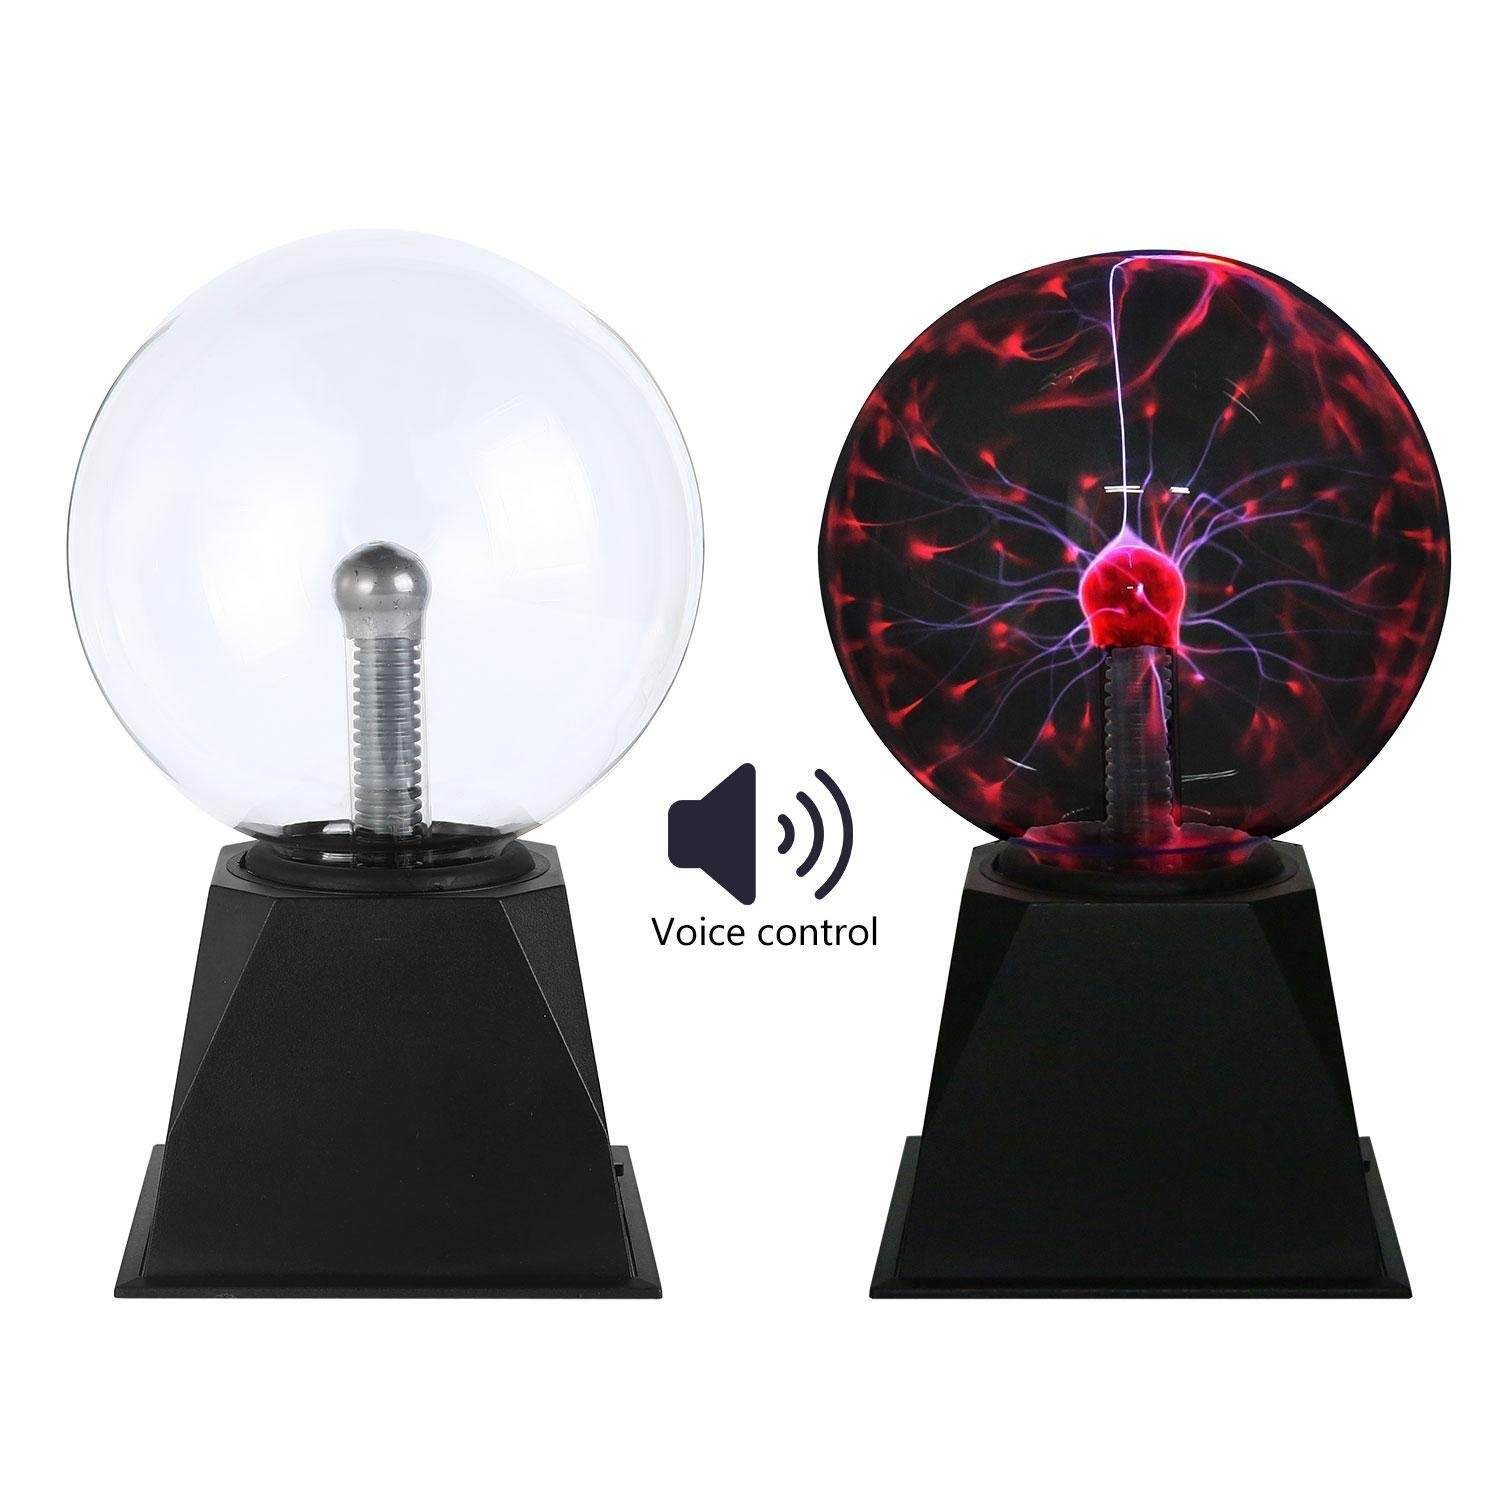 Youtree Plasma Ball, Plasma Light Lamp Large Electric Globe Static Light W Touch, Sound Sensitive Lightning, Big 6/8 Inch Glass Sphere and Mini Tesla Energy Coil is Best Science Toy Nightlight for Kid